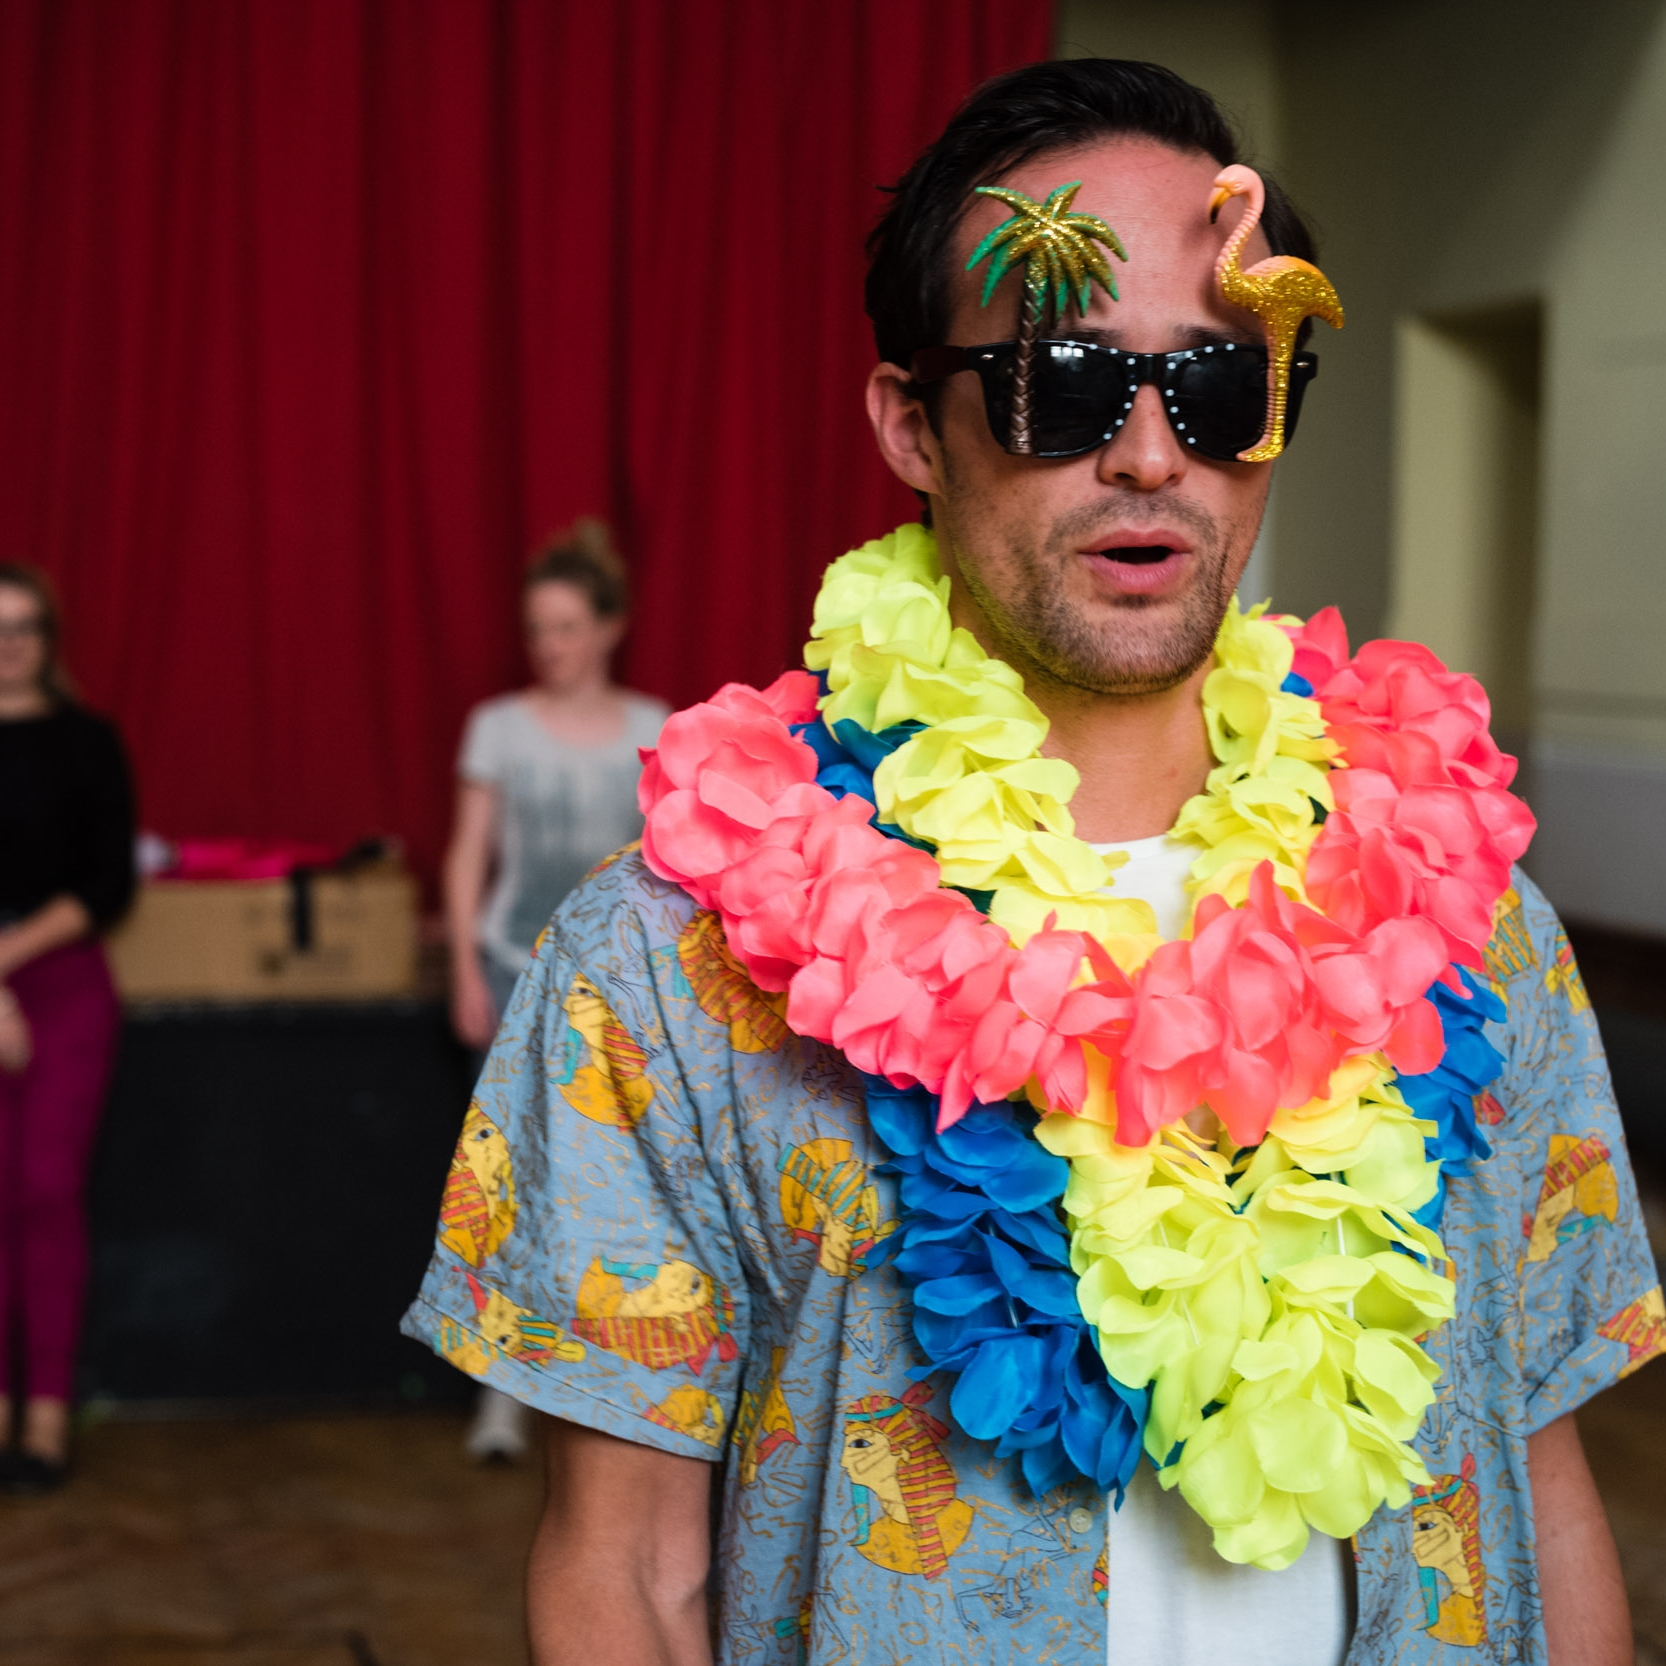 The Magic Flute - Rehearsal Images